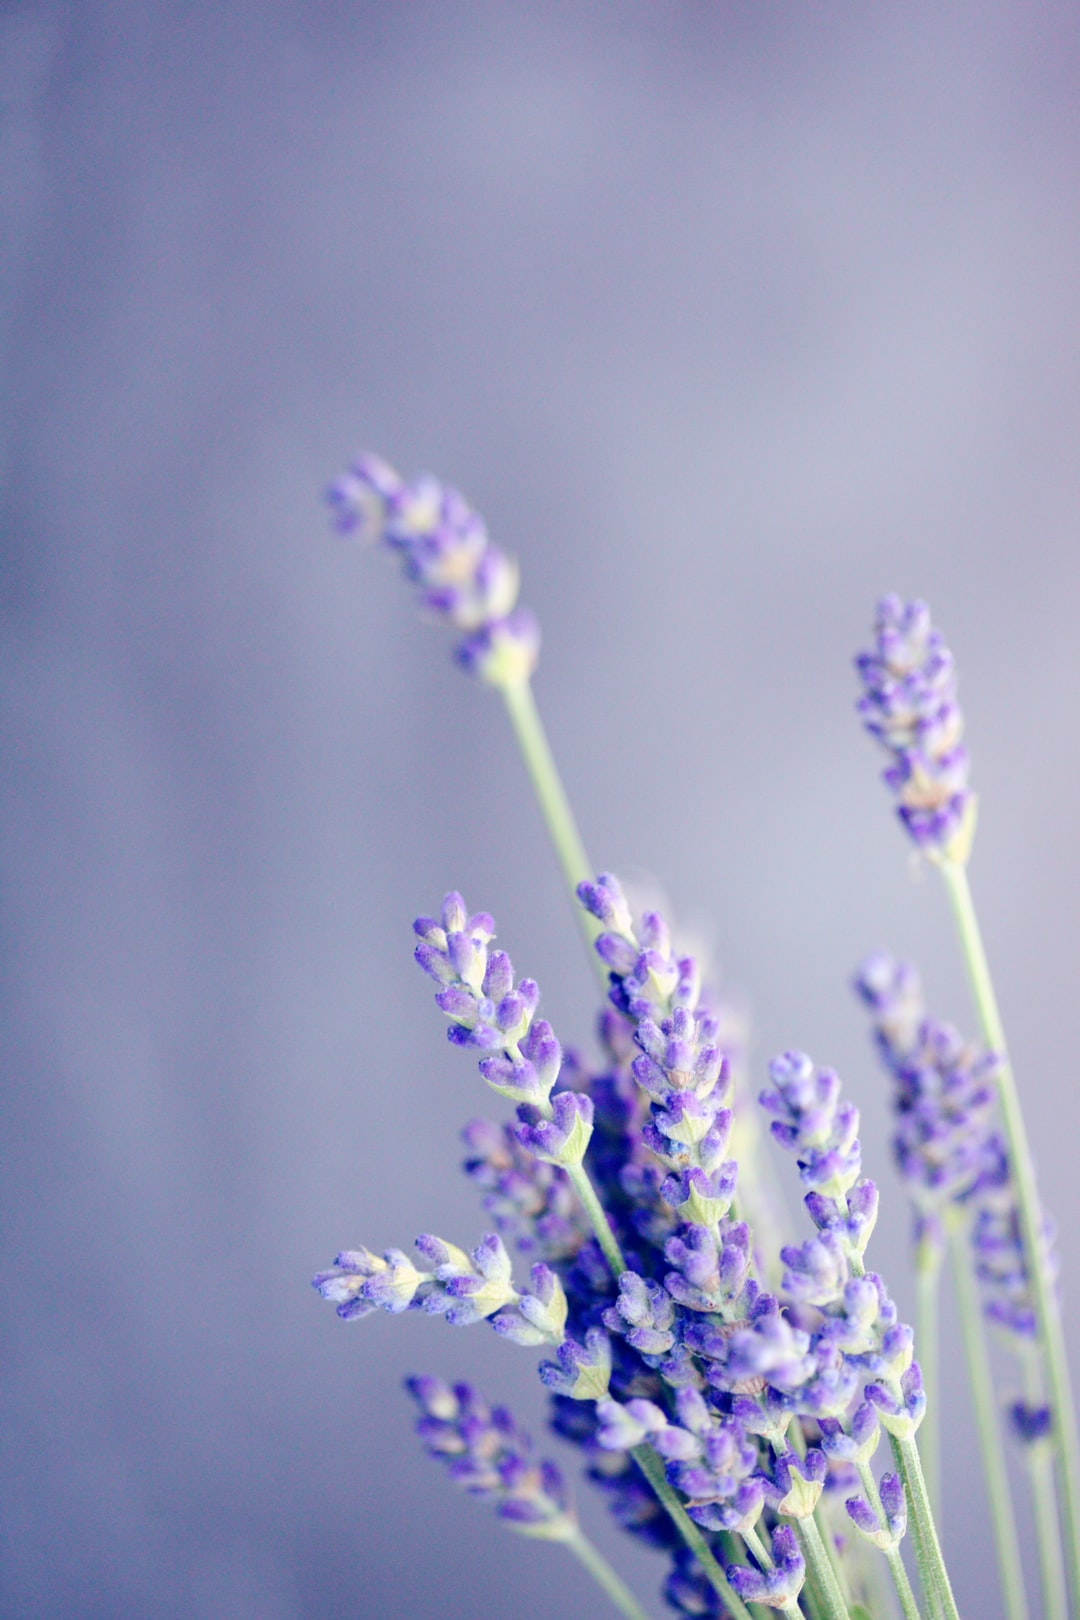 Some fresh lavender buds that grow wild in my yard. I love the soothing soft purple hues.